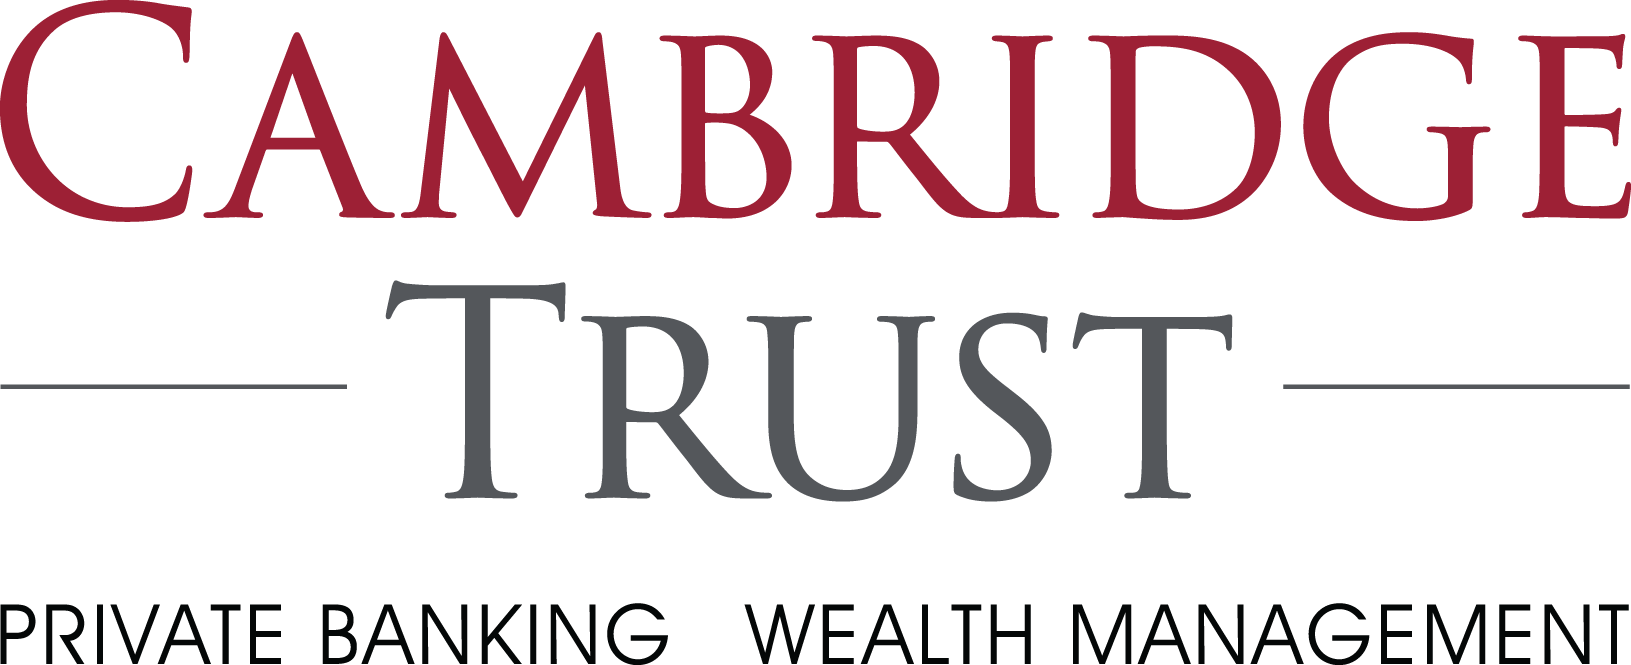 Cambridge Trust Logo 2018 Jpg